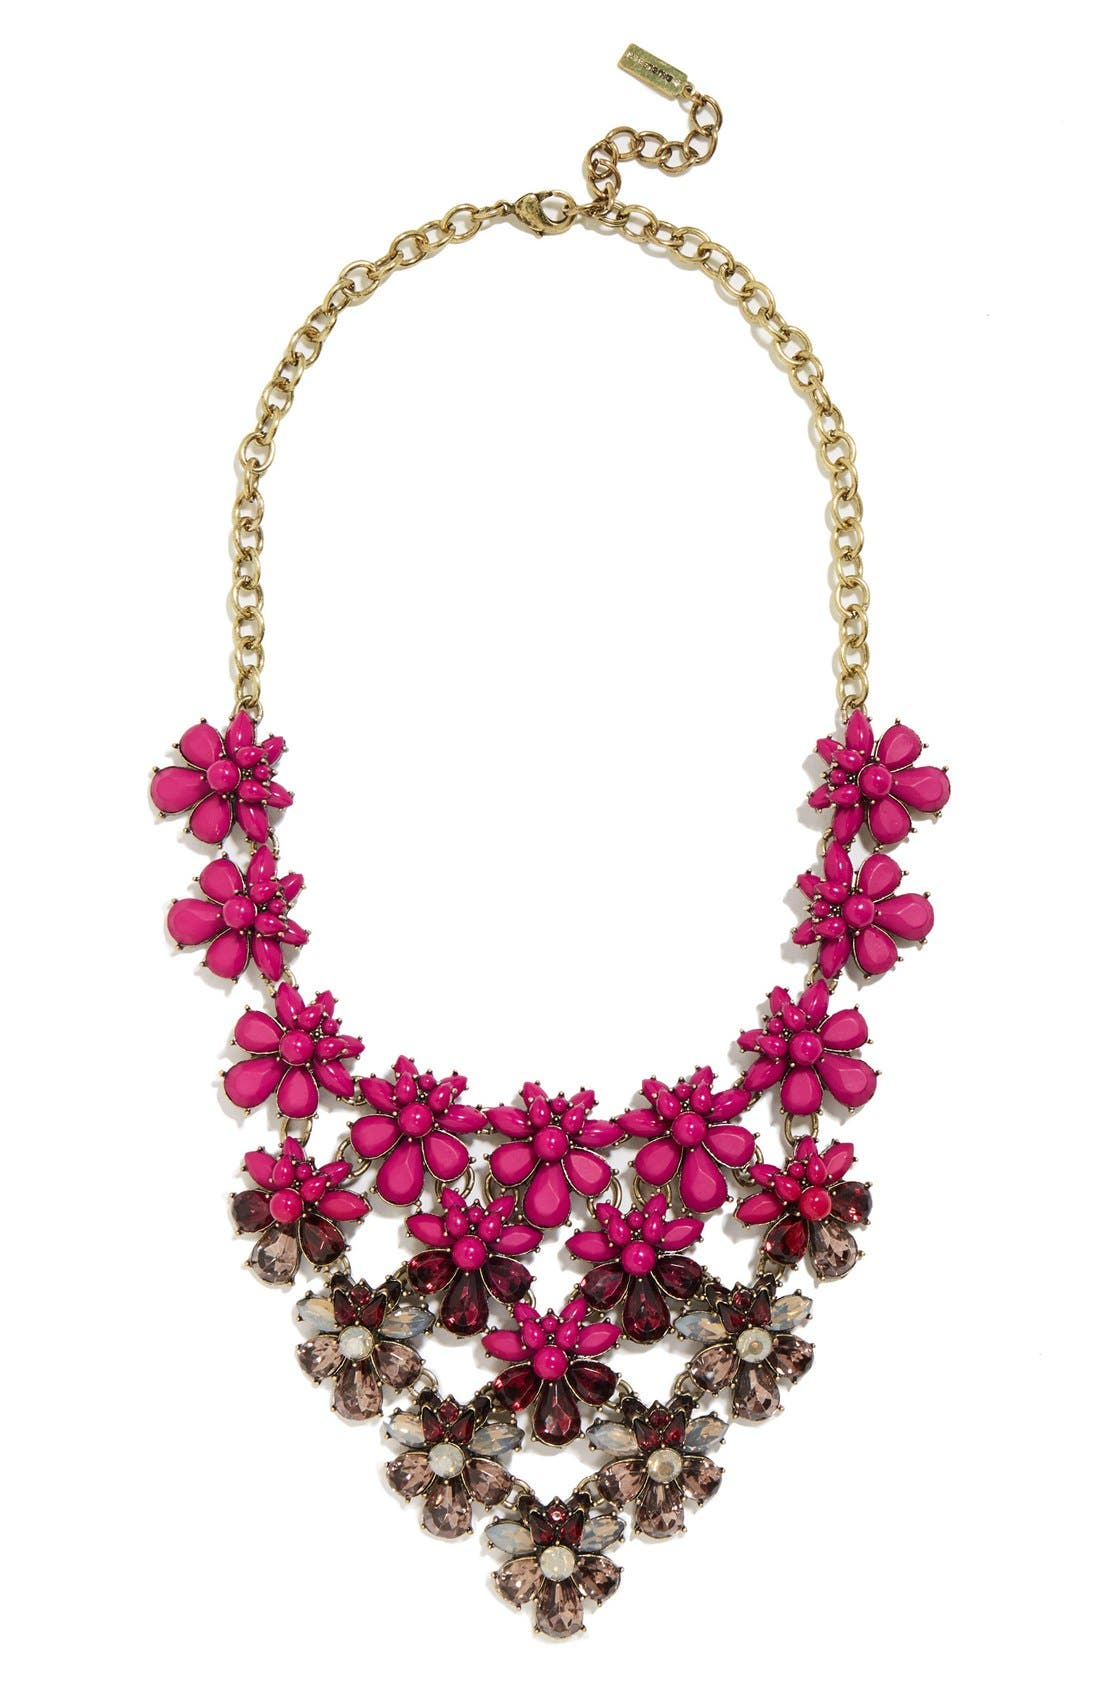 Main Image - BaubleBar 'Anthena' Bib Necklace